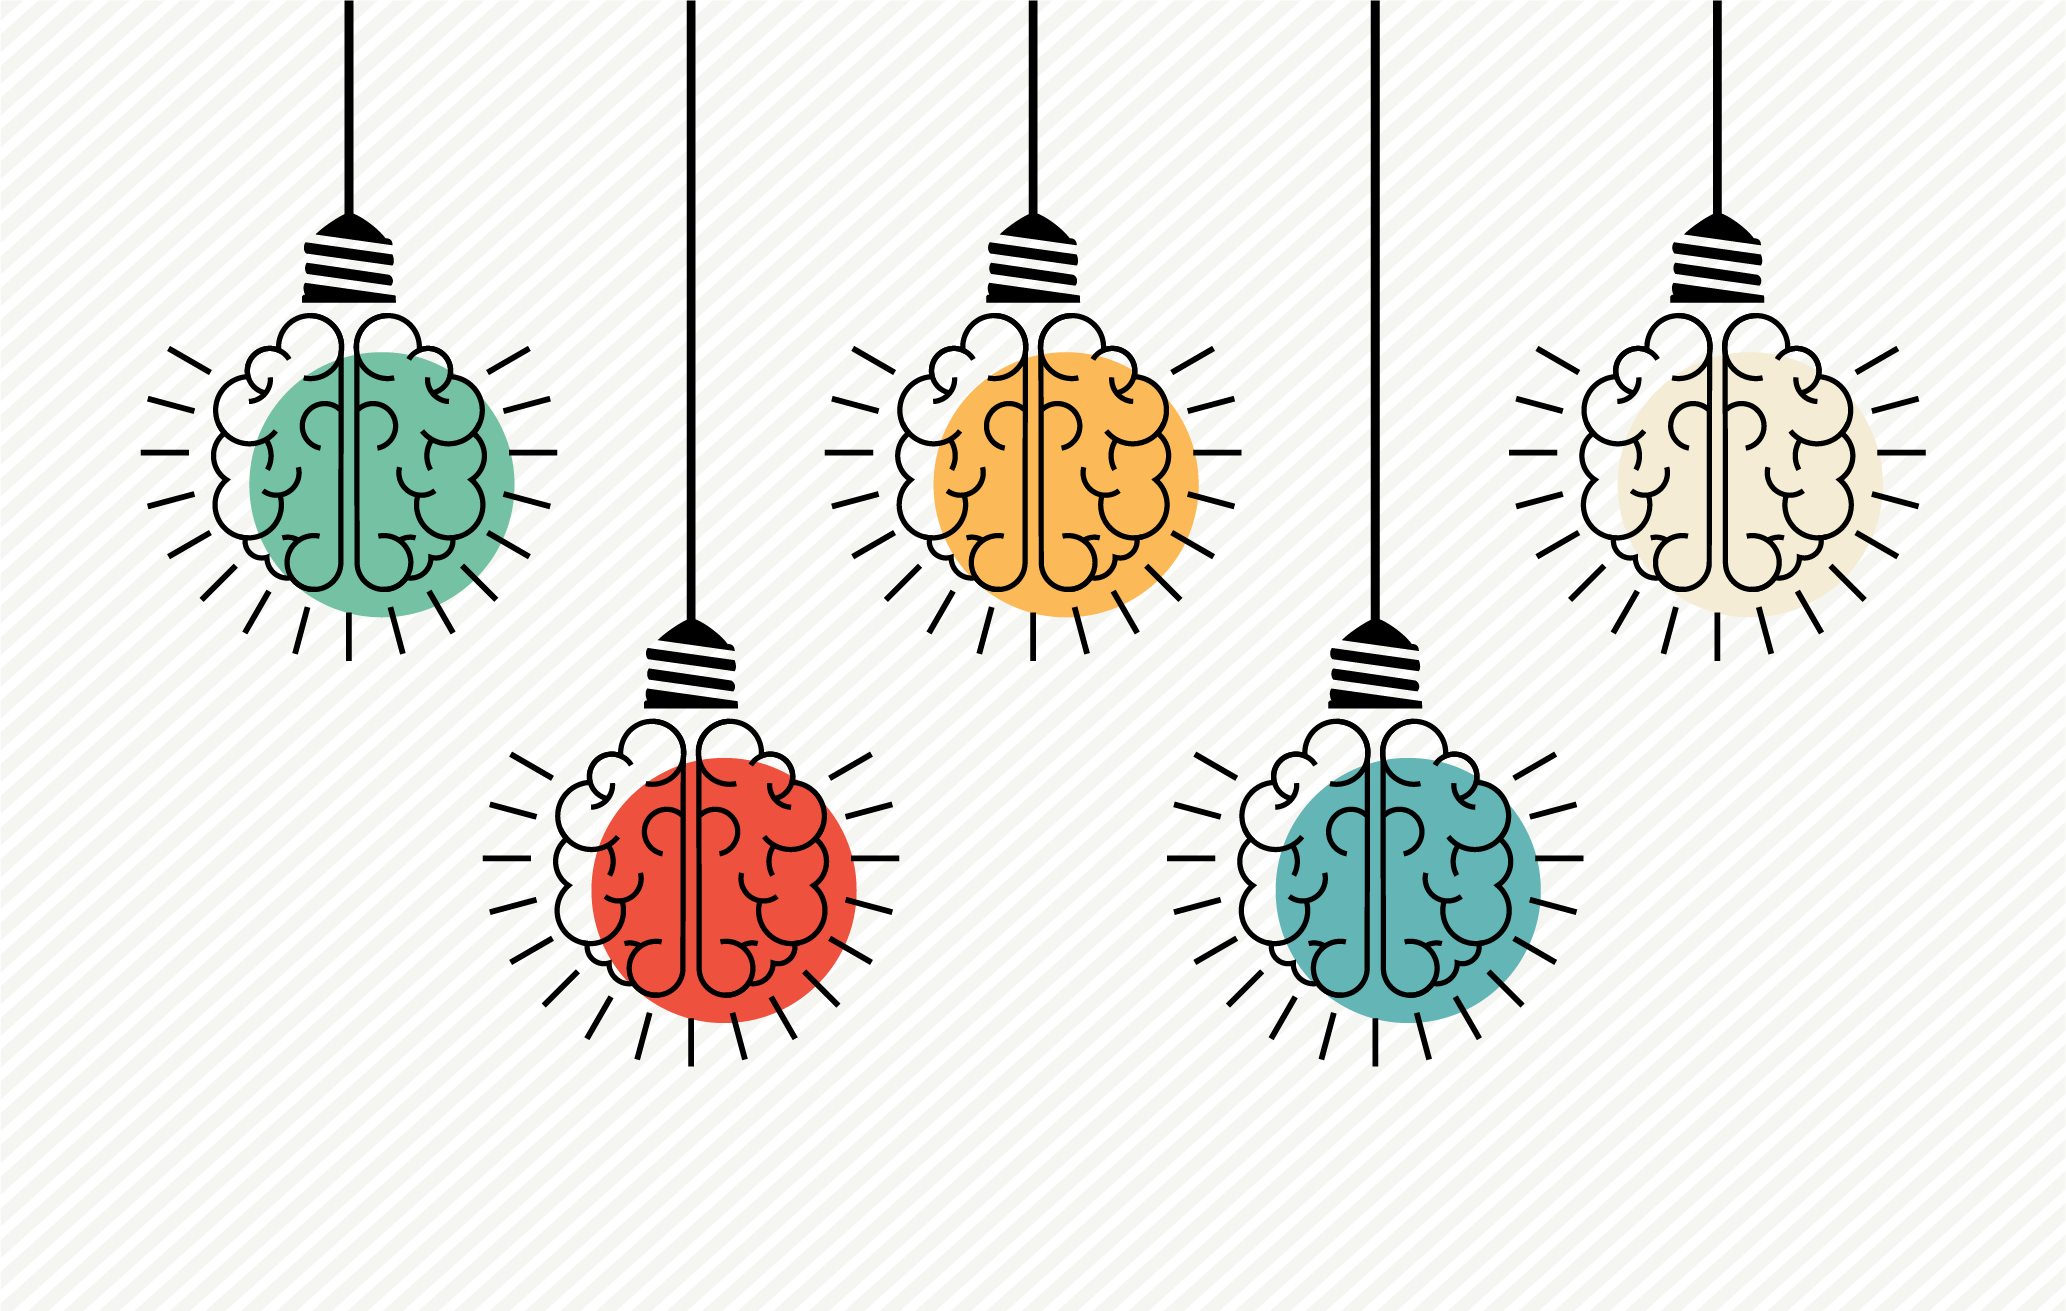 Brains_Light_Bulbs_Graphic-01